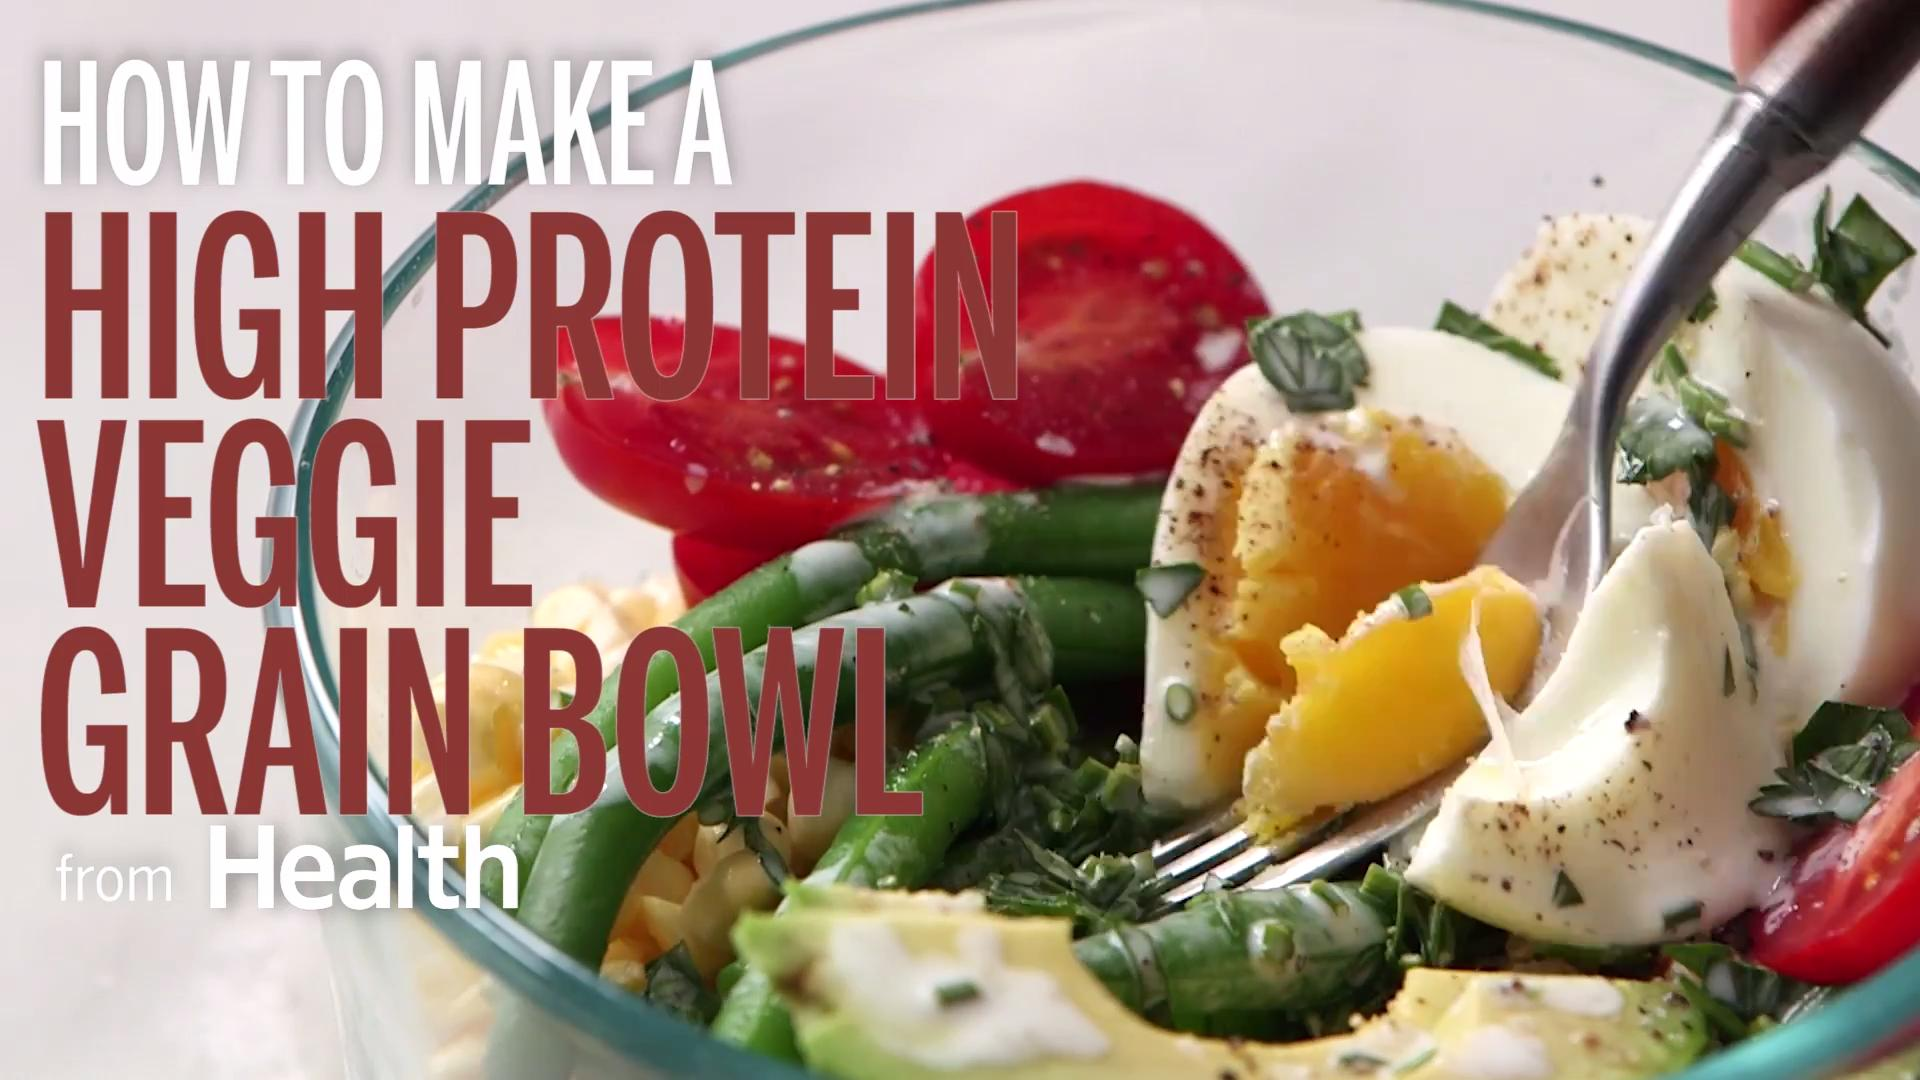 Superfood Grain Bowl